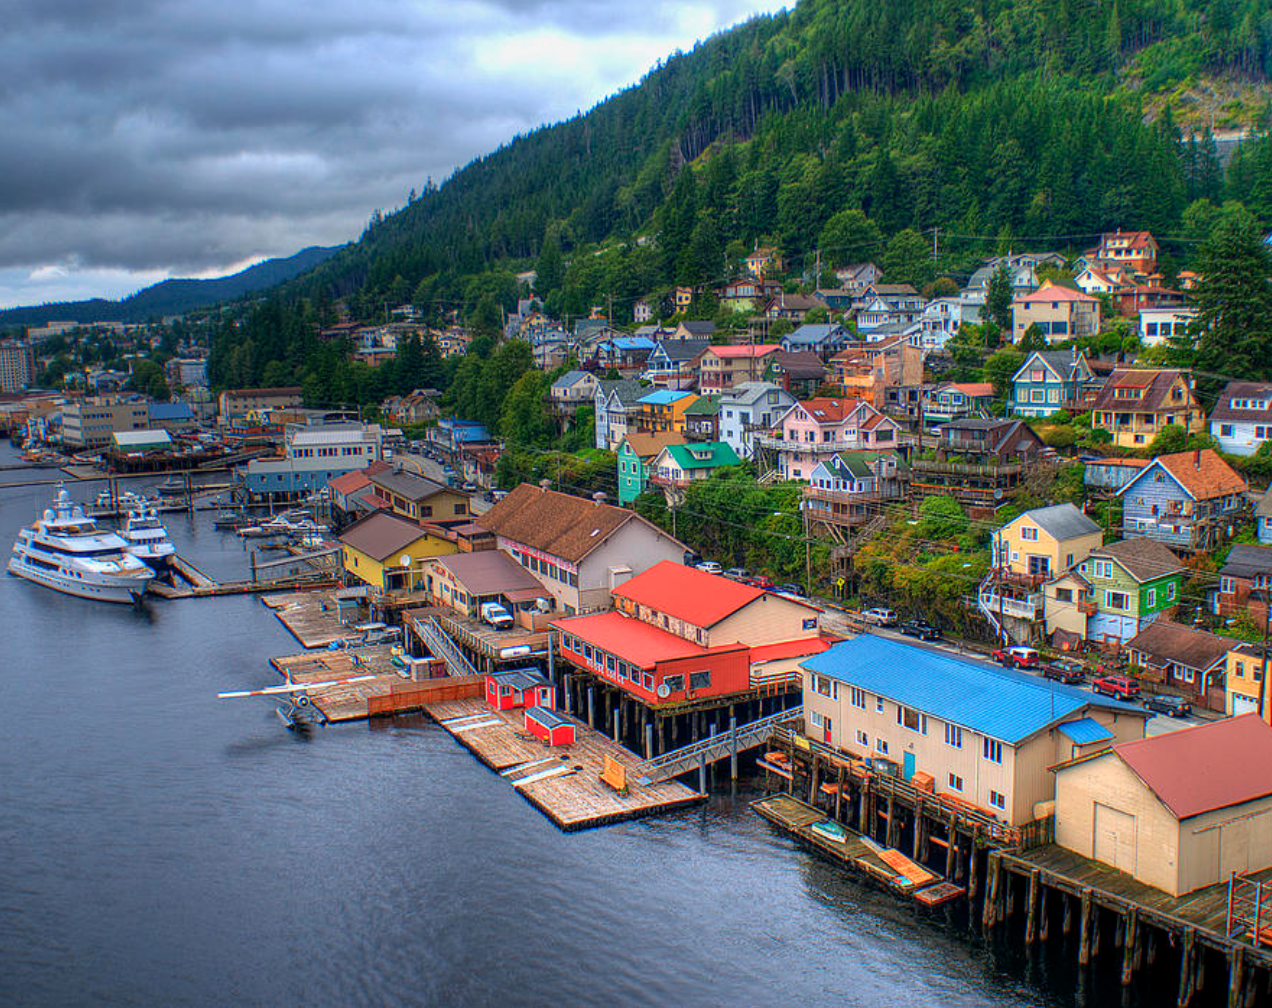 View of Ketchikan by the water (Photo via Fine Art America).